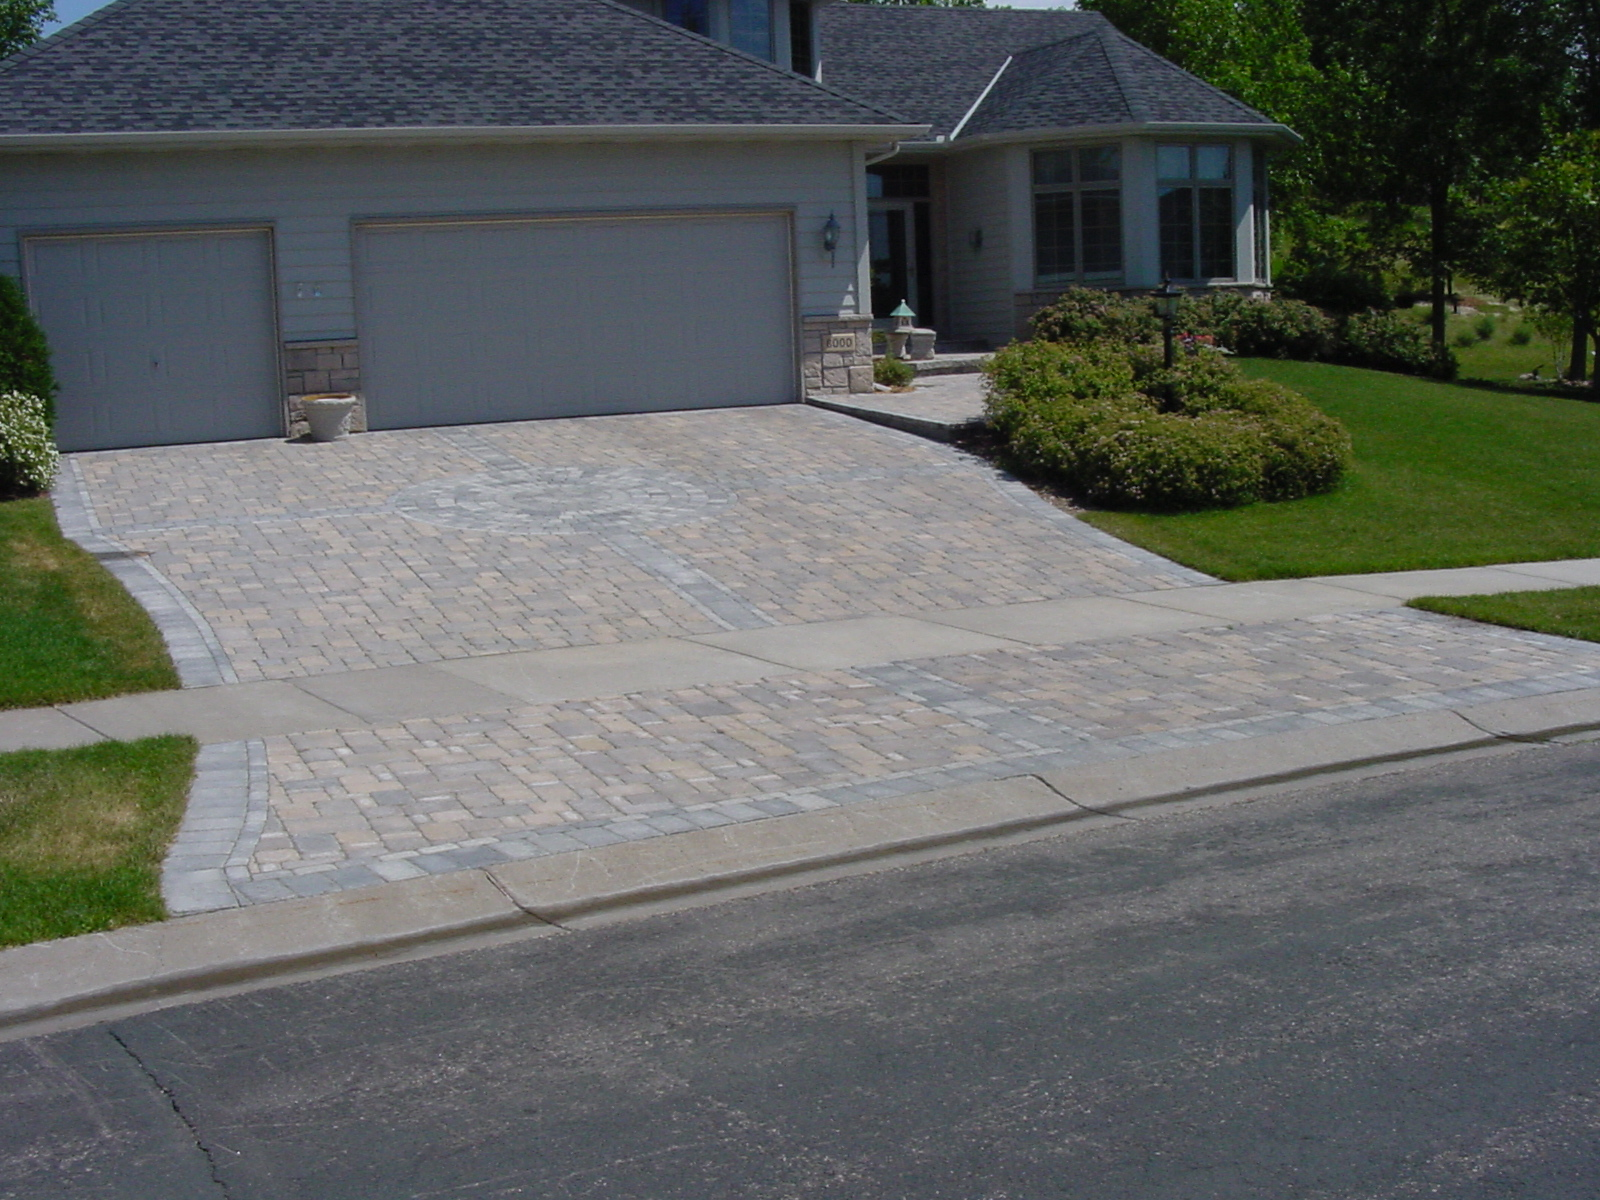 Benefits And Drawbacks Of Concrete Driveways